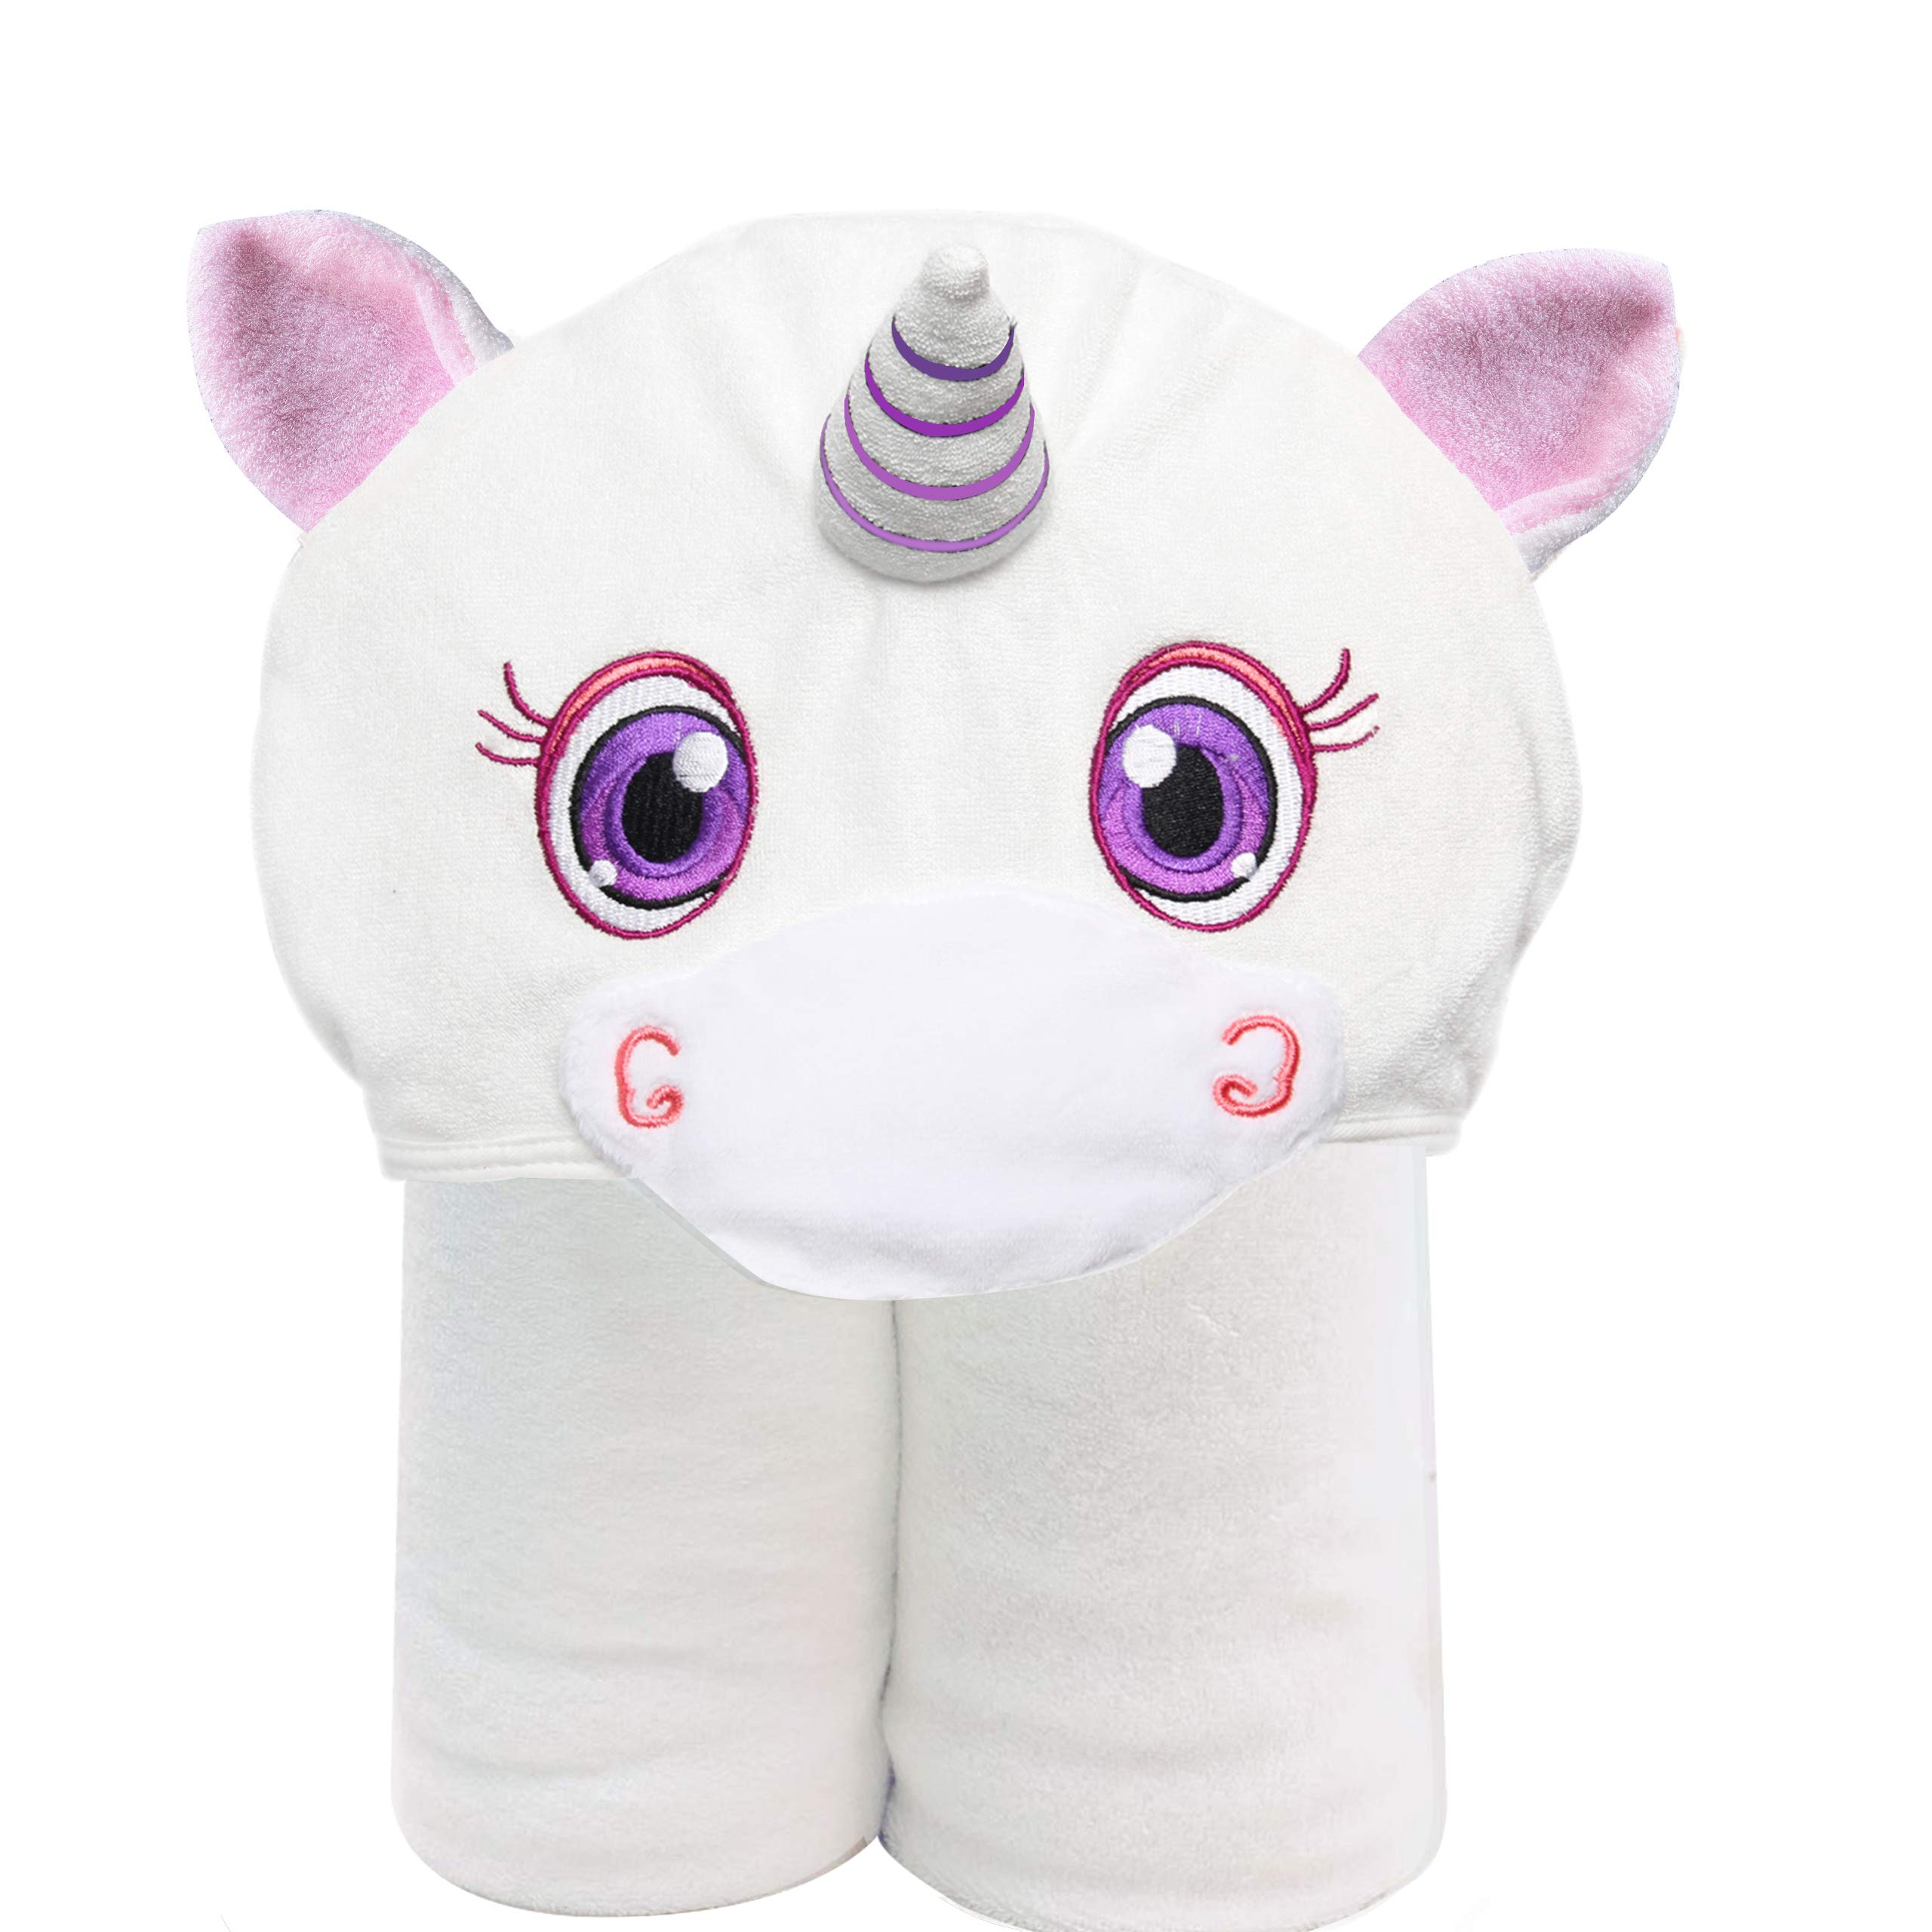 HIPHOP PANDA Luxury Bamboo Baby Hooded Towel for Girl- Softest Hooded Cute Pink Ear 3D Unicorn Bath Towel for Babie, Toddler,Infant - Ultra Absorbent and Soft, Perfect for Newborn Girl